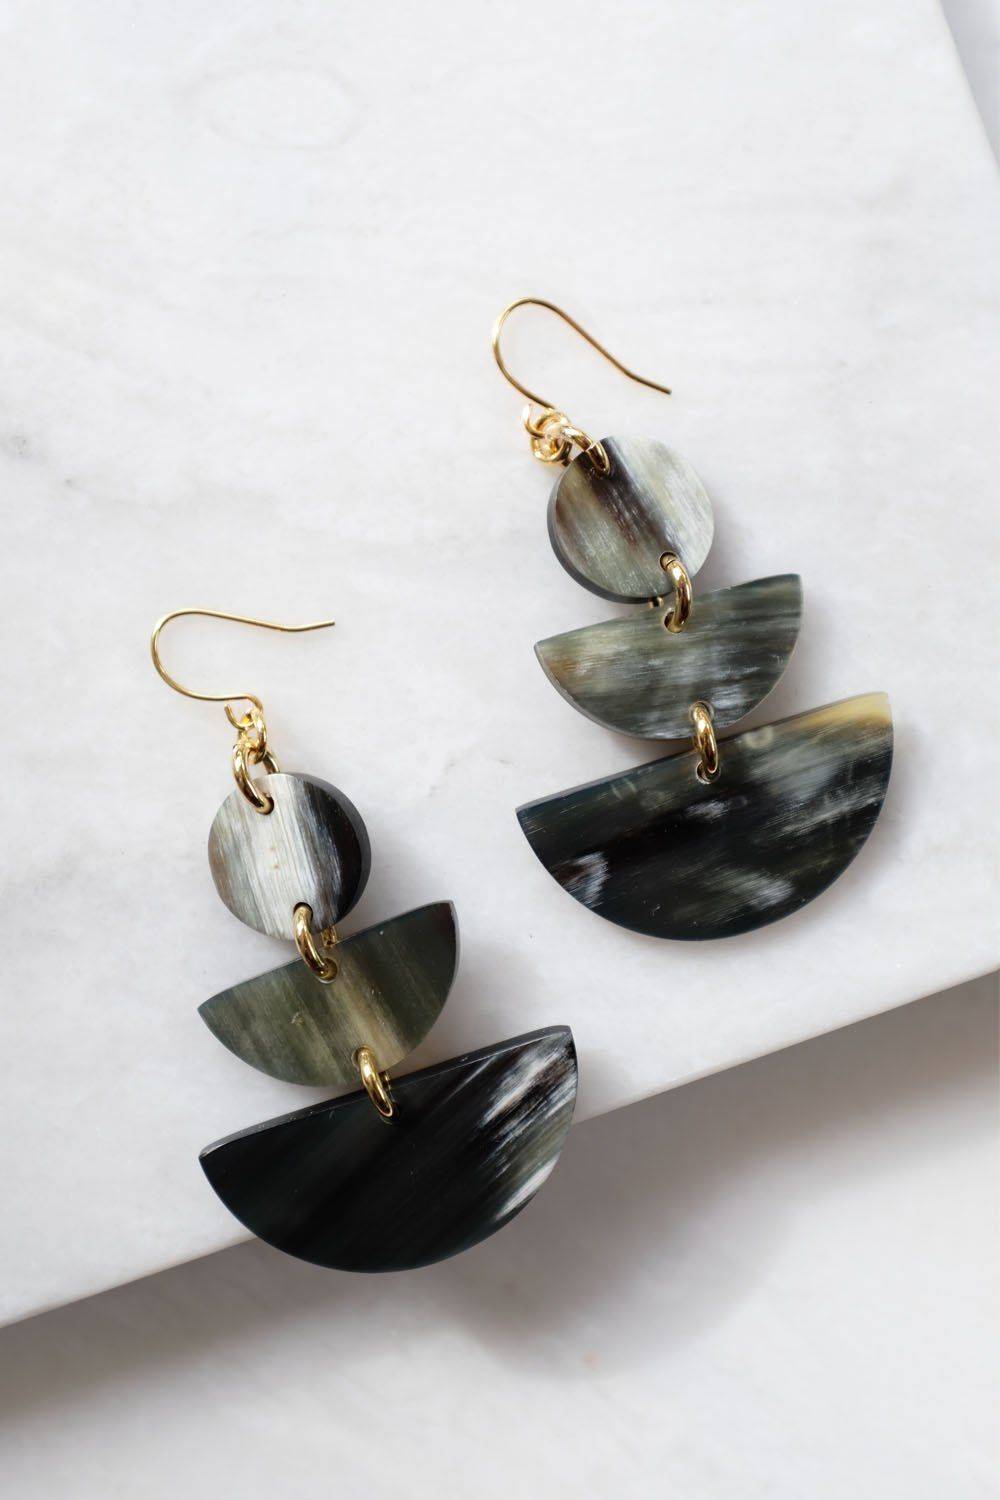 Saigon 16K Gold Plated Cream Geometric Statement Buffalo Horn Earrings - Handcrafted & Unique Buffalo Horn Jewelry